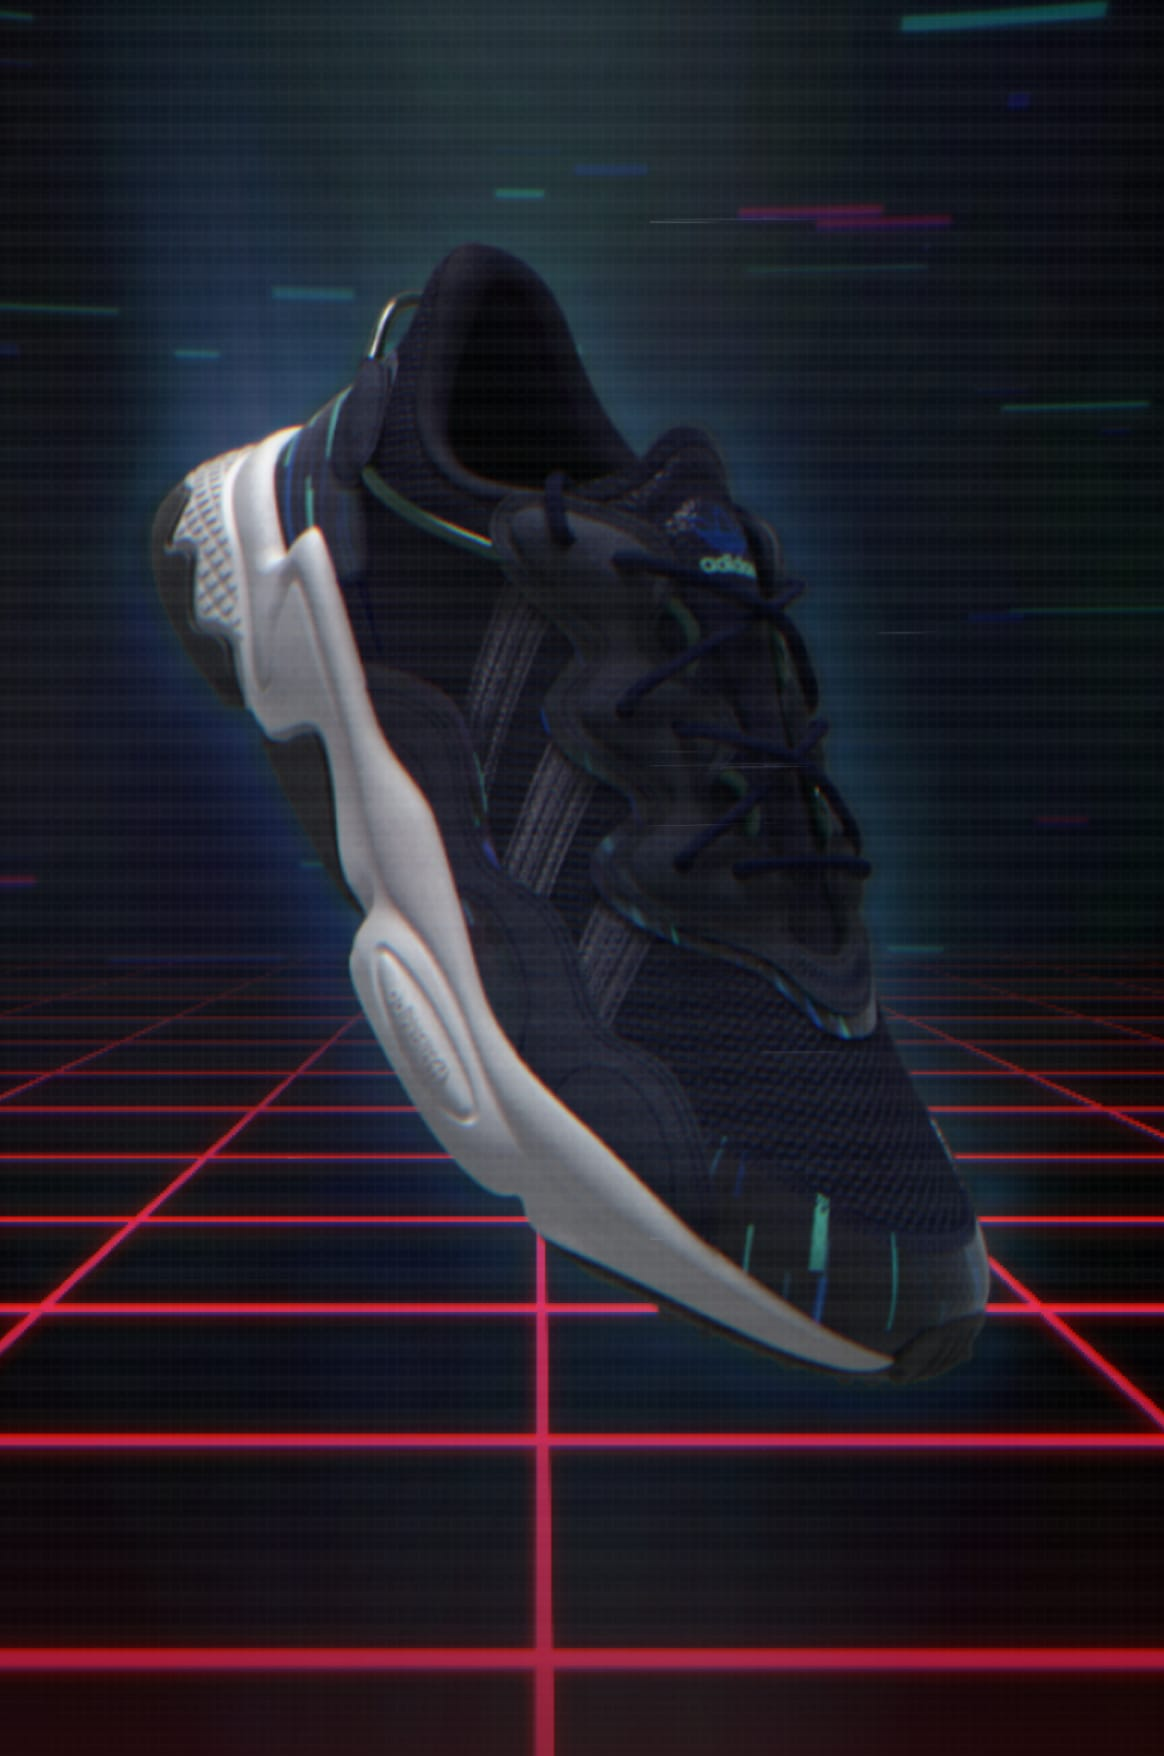 adidas Ozweego in video-game setting.